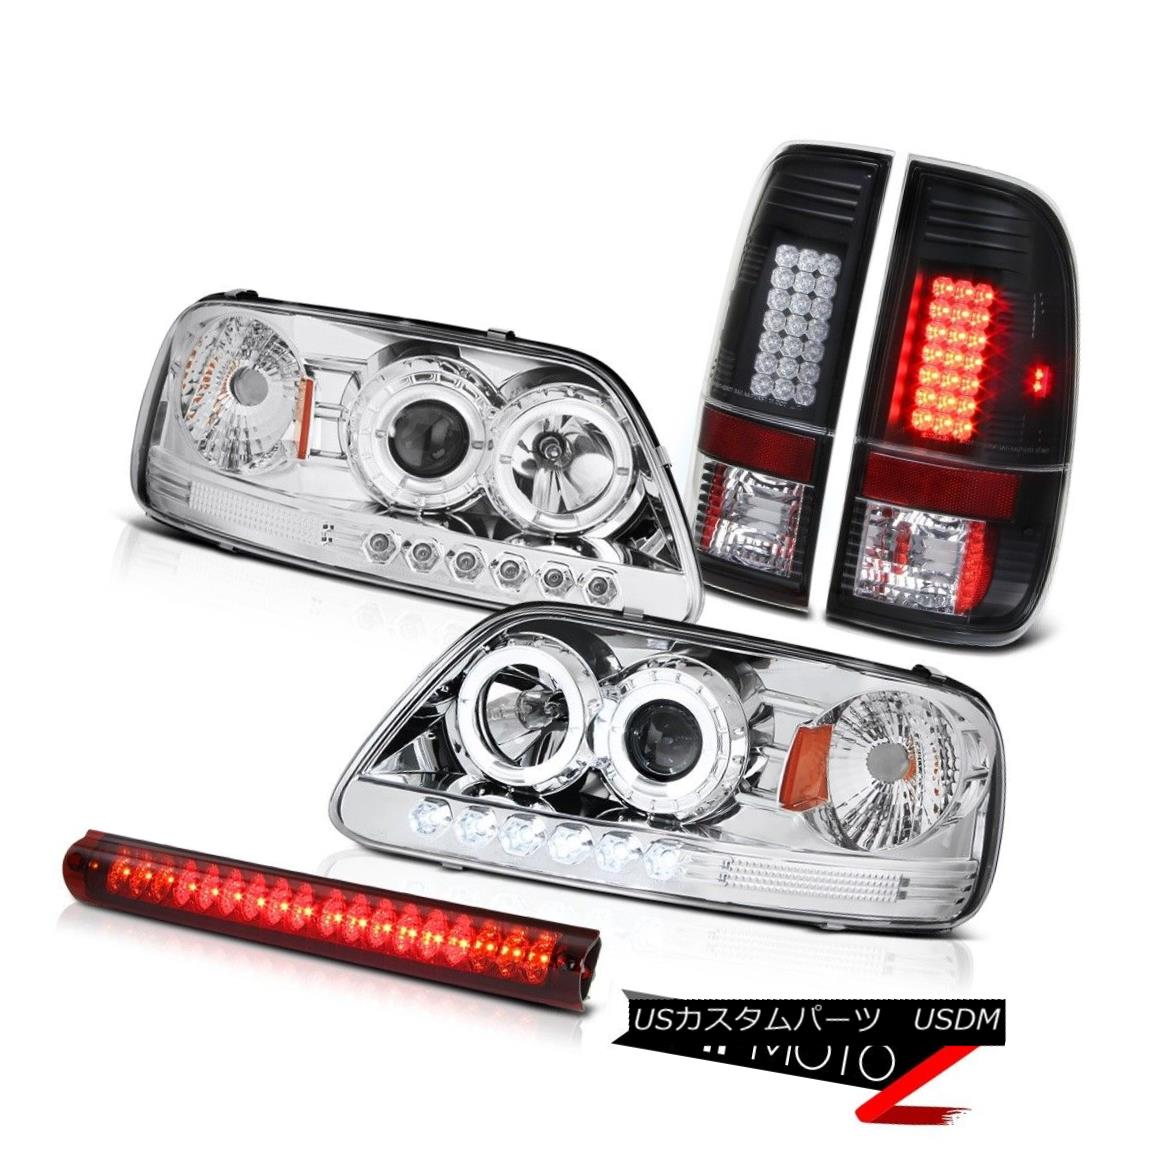 ヘッドライト DRL Halo Headlight Black LED Taillights 3rd Brake Lamp Red 1997 1998 F150 Lariat DRL HaloヘッドライトブラックLEDテールライト第3ブレーキランプRed 1997 1998 F150 Lariat